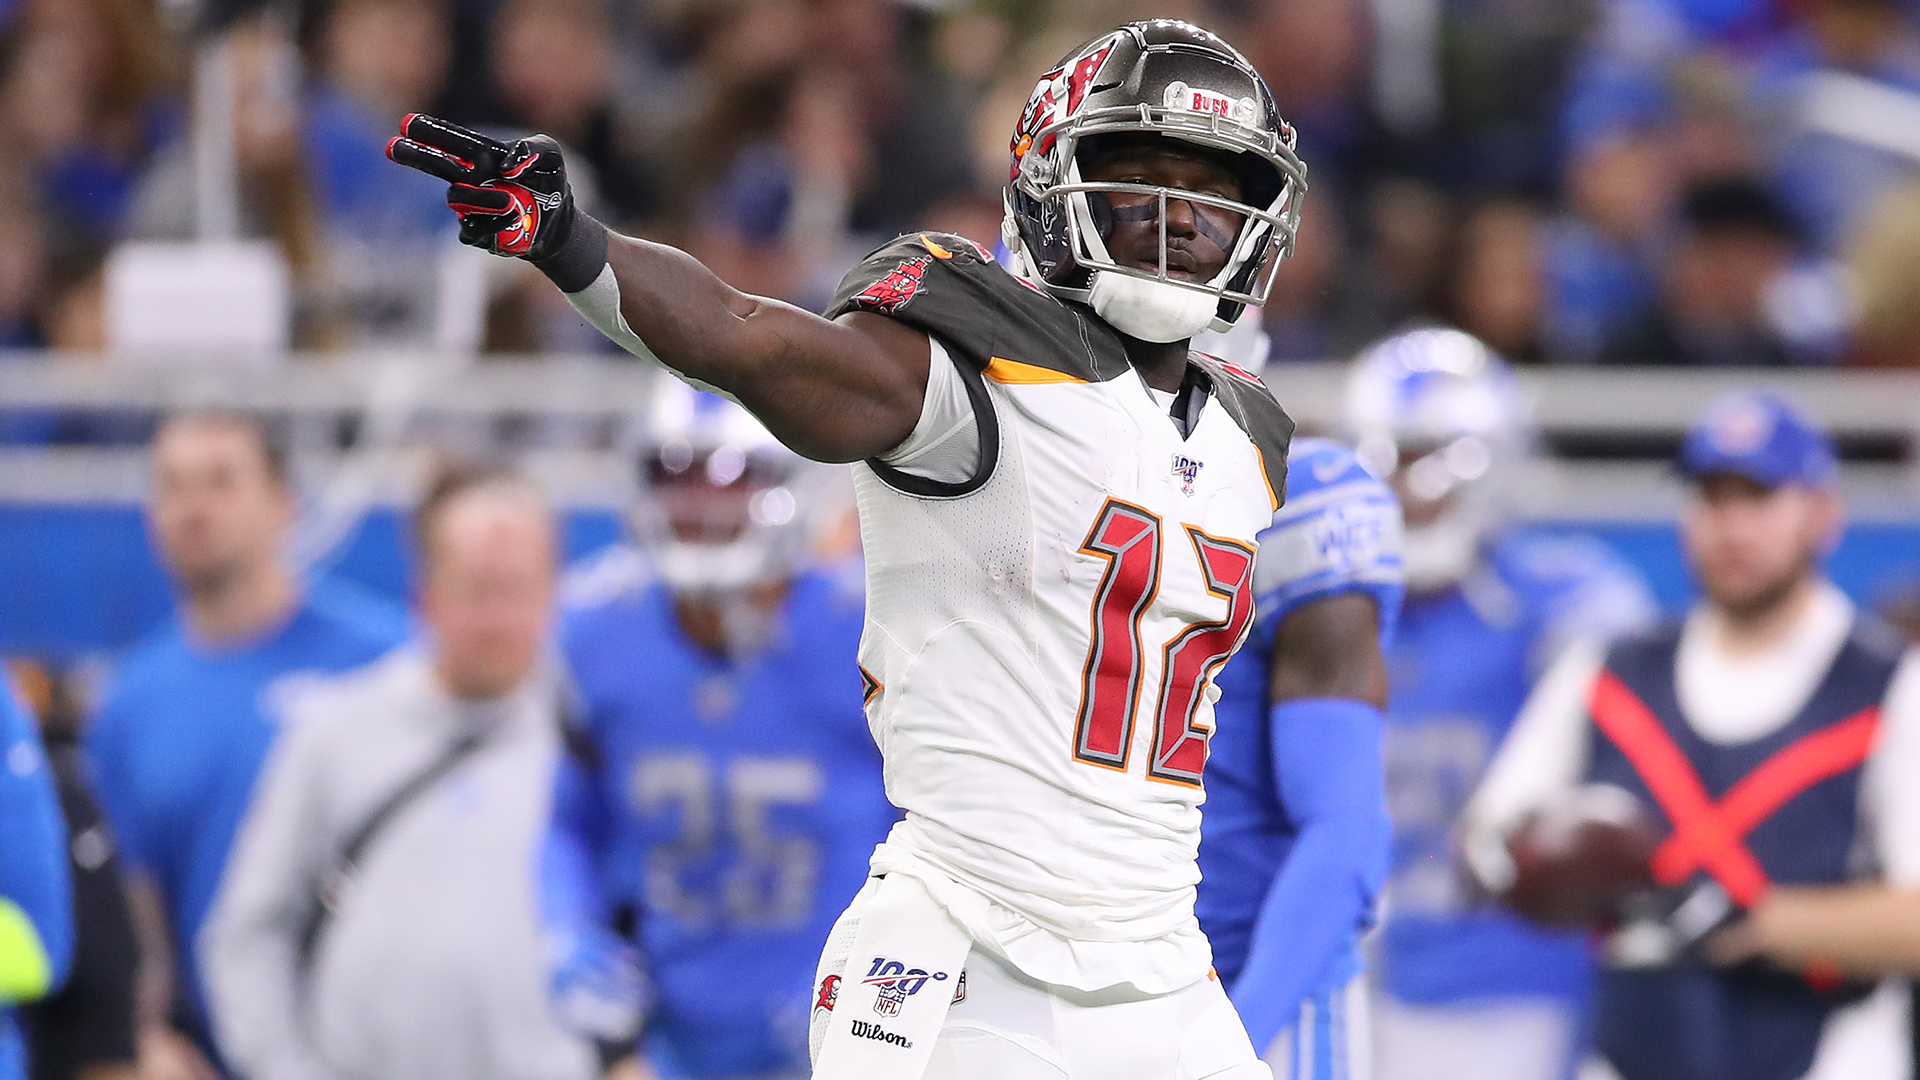 Top 2019 NFL wide receivers: Chris Godwin, Julio Jones, Michael Thomas